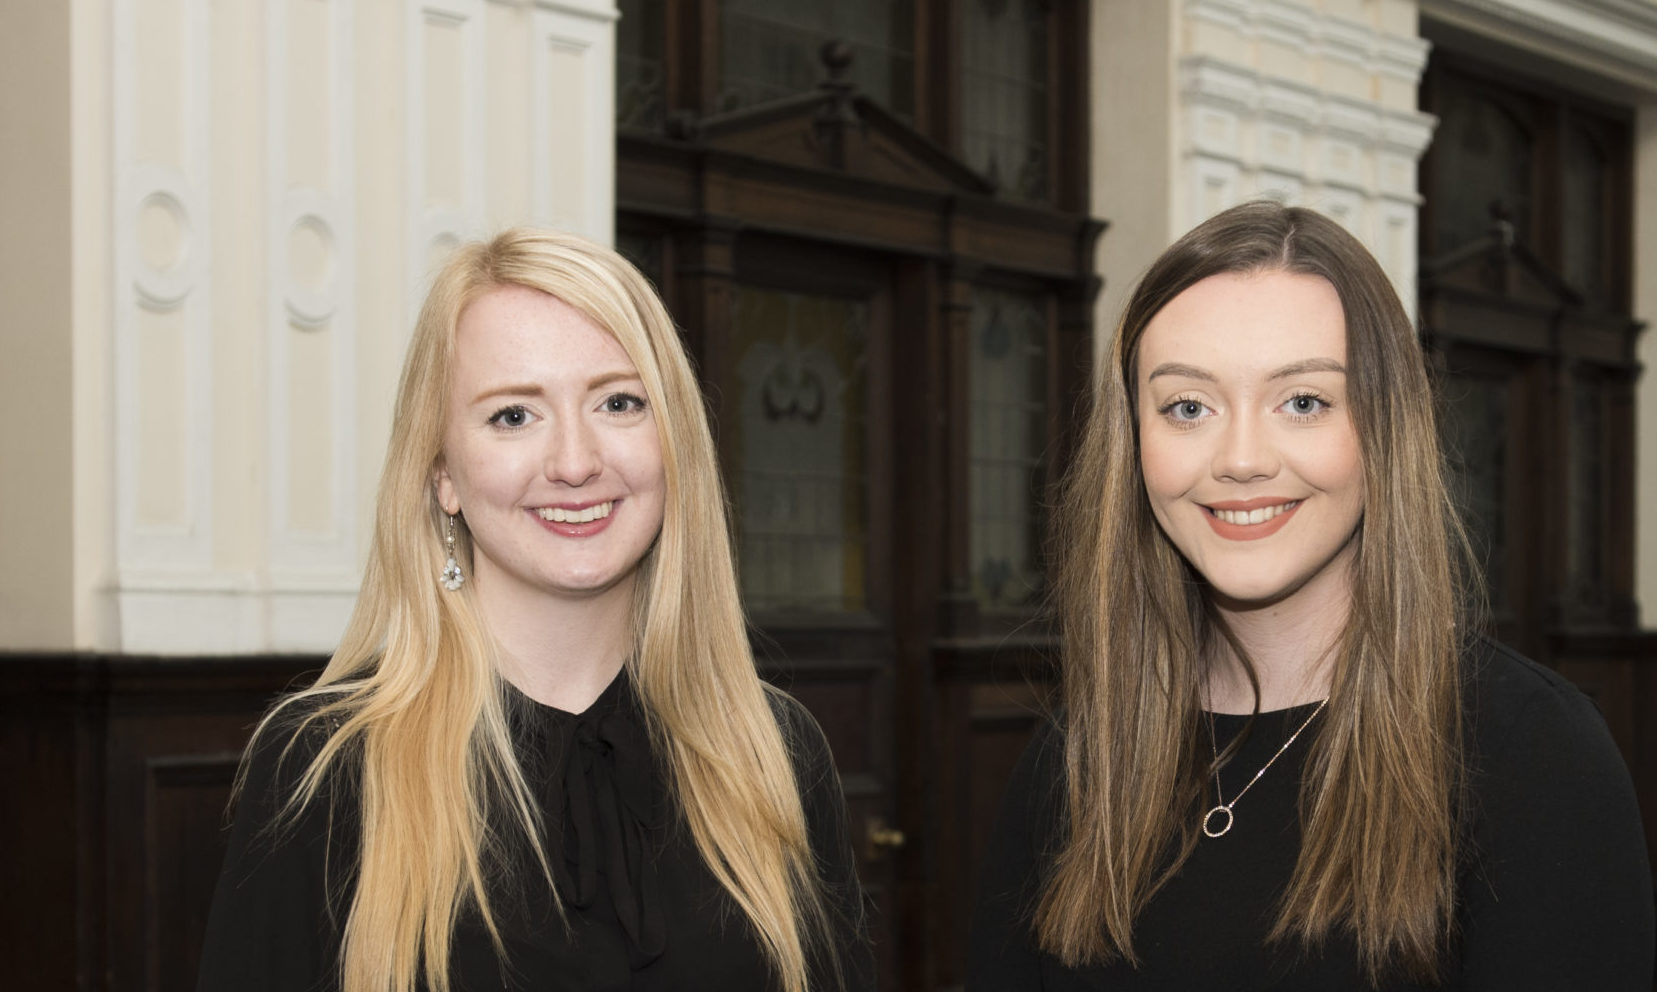 Sarah Baxter and Aimee Stephen from DYW Moray.